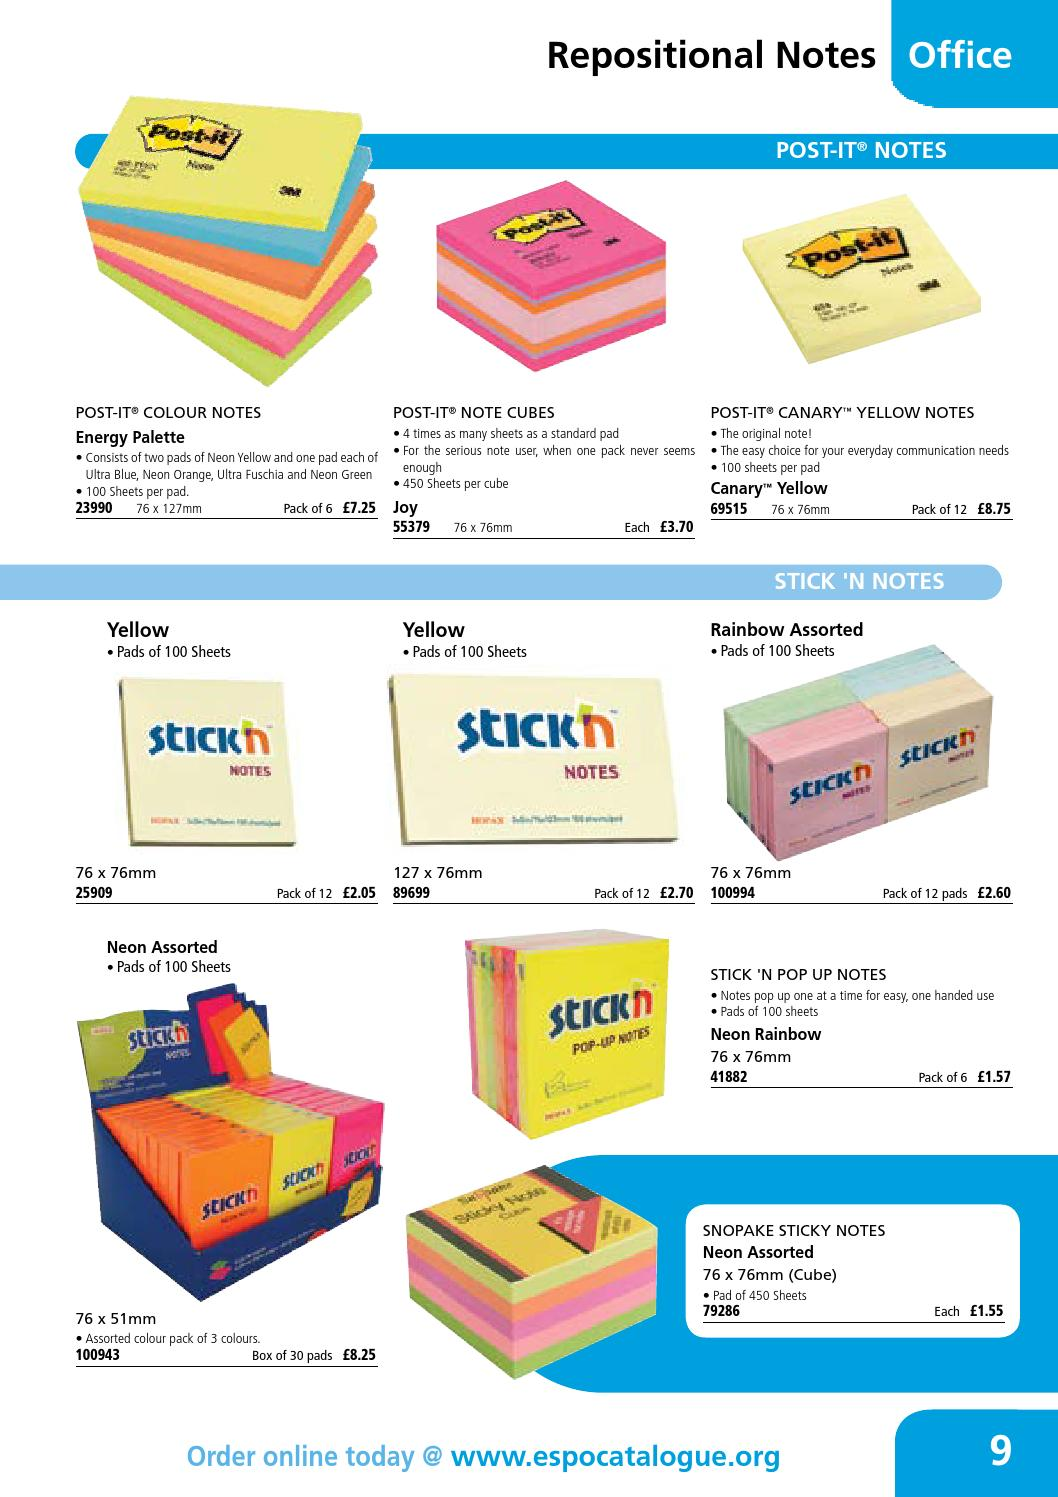 Neon// Assorted Colours Snopake 127x76mm Sticky Notes Pack of 6 , 100 Sheets per Pad